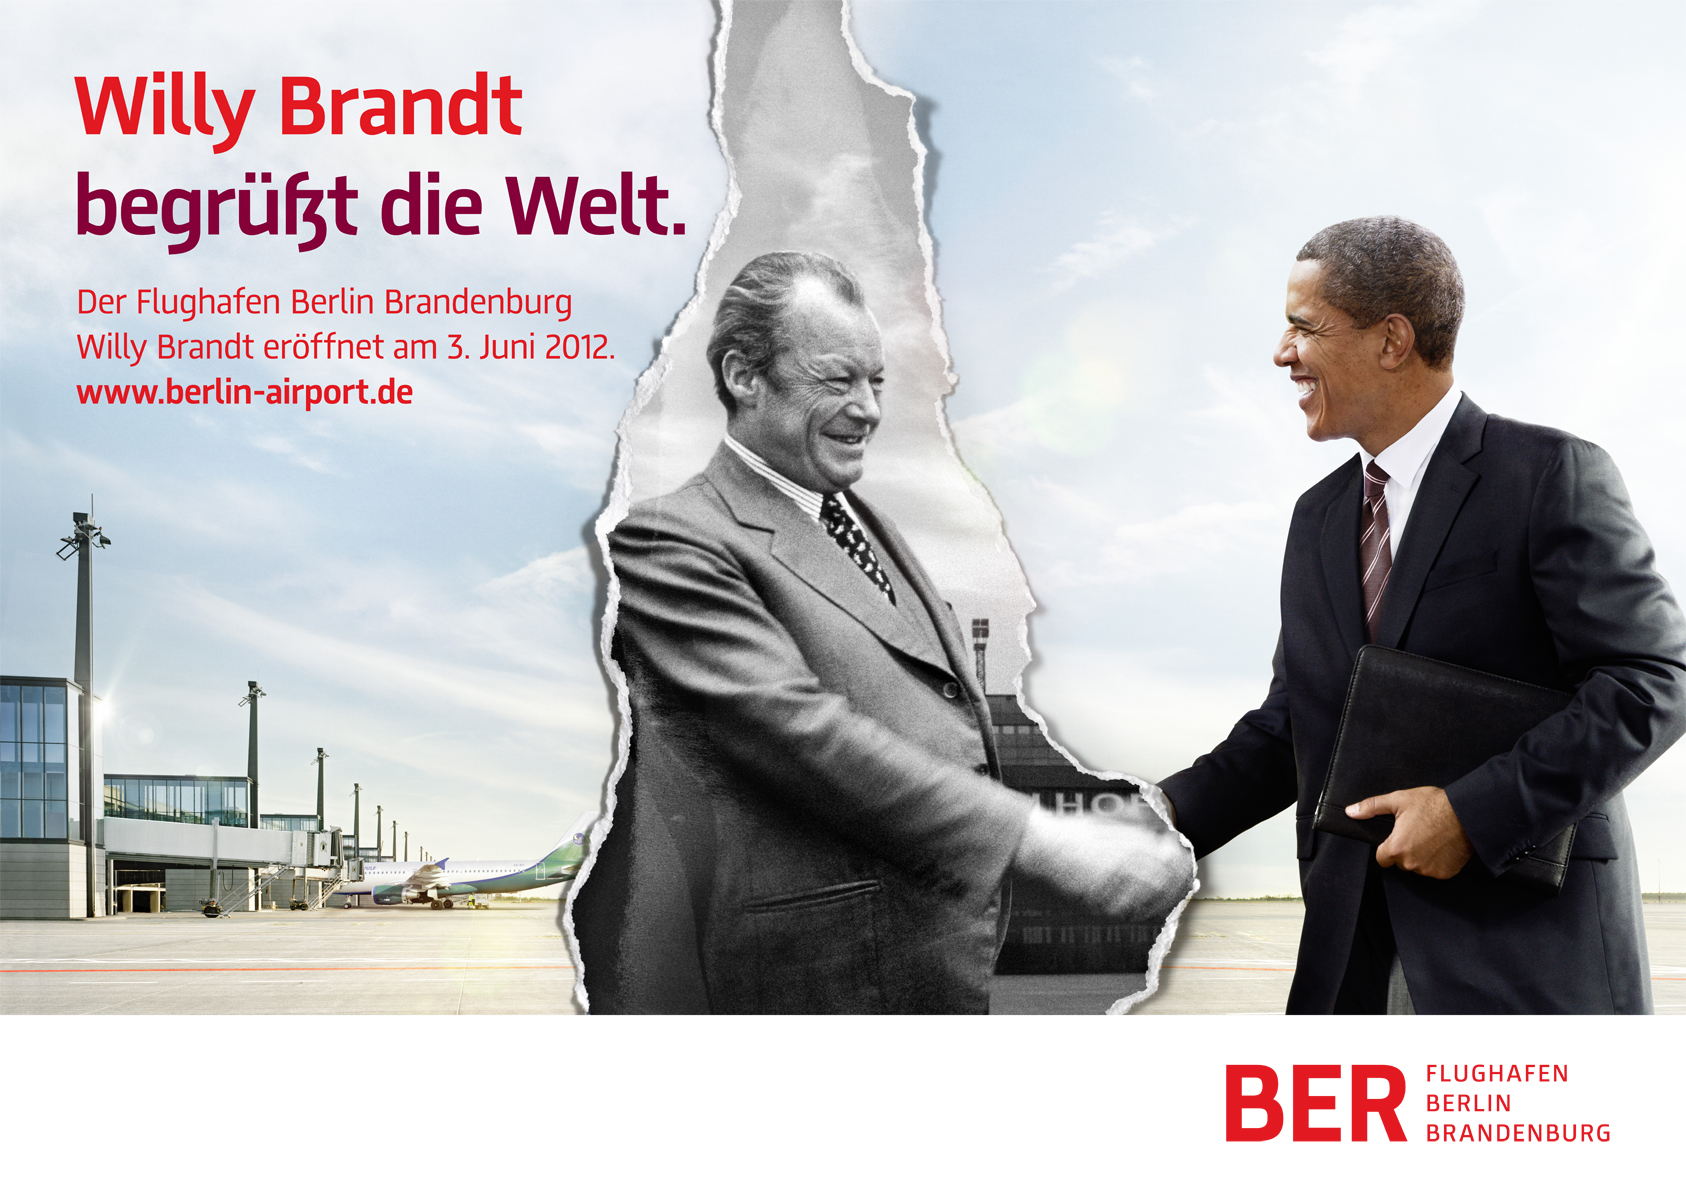 Willy Brandt begrüßt Barack Obama